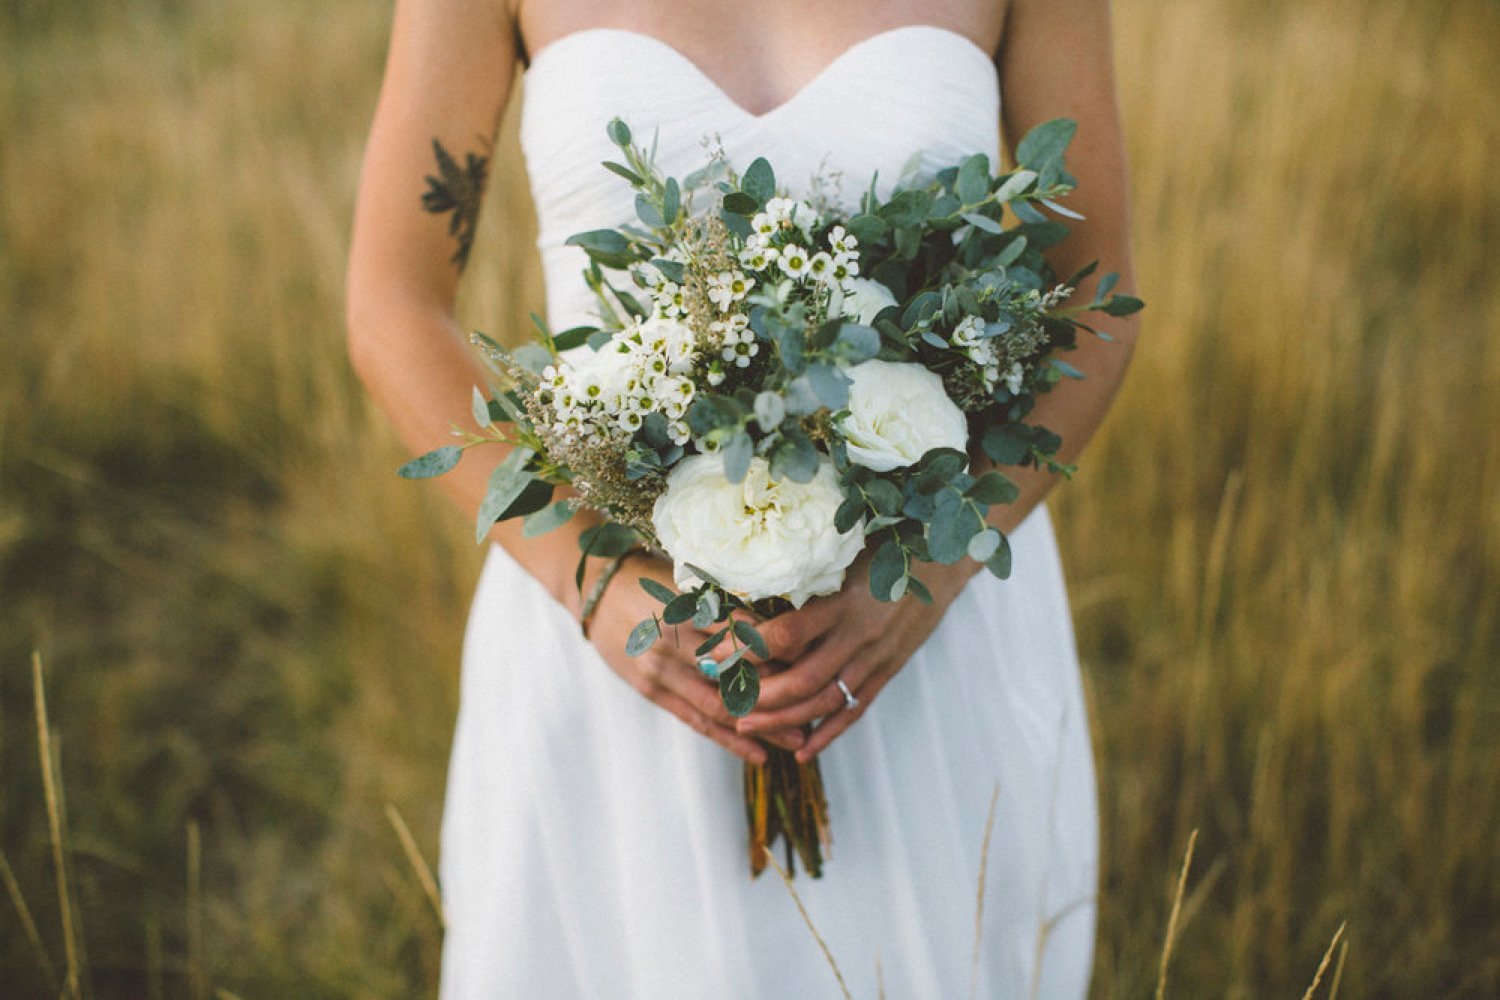 photo of a bride holding a bouquet of white roses and greenery